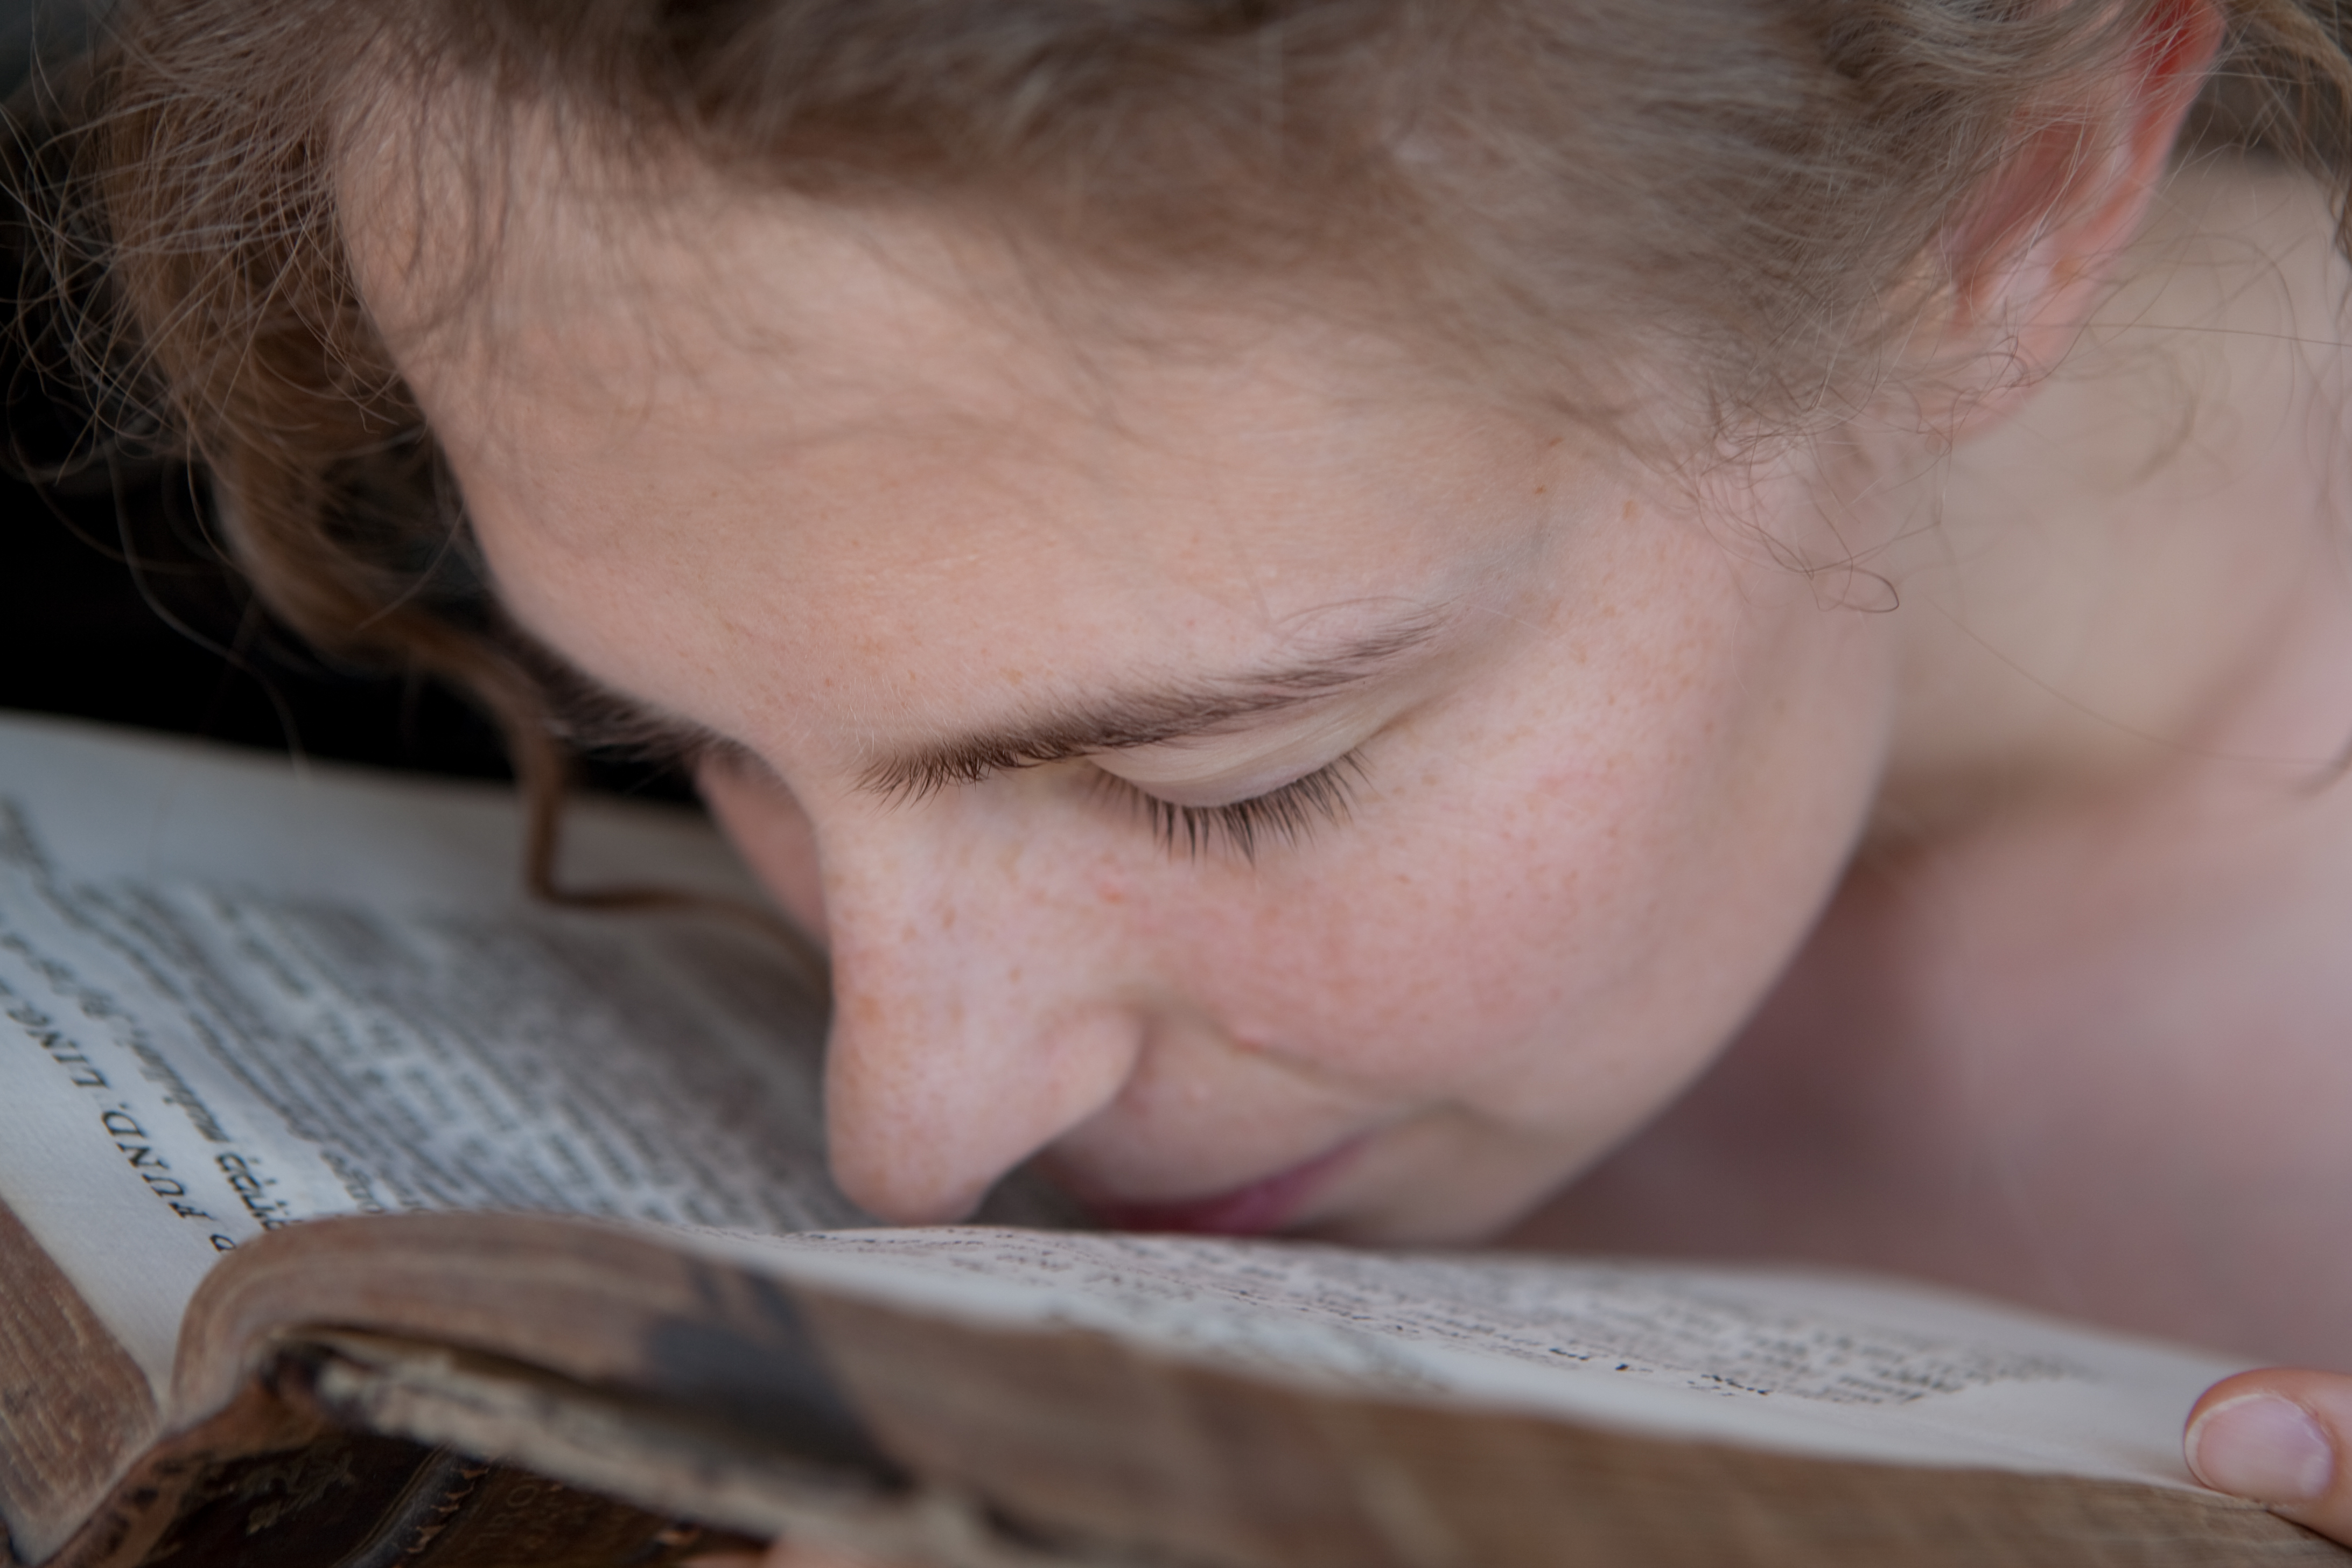 woman, smell, book